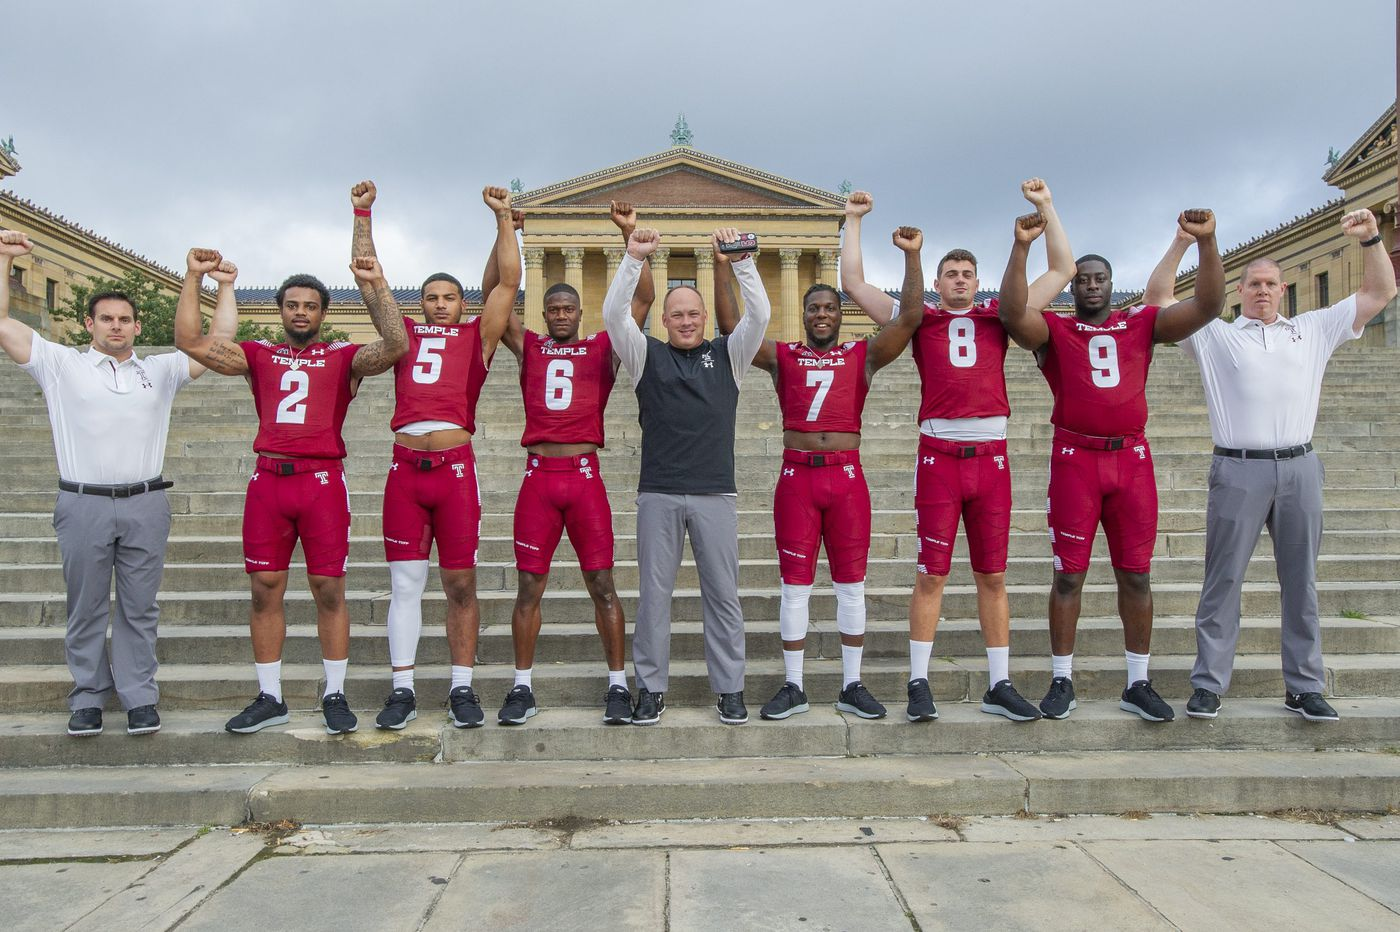 Temple football coach Geoff Collins: Isaiah Wright to get prominent role, Kareem Ali no longer playing